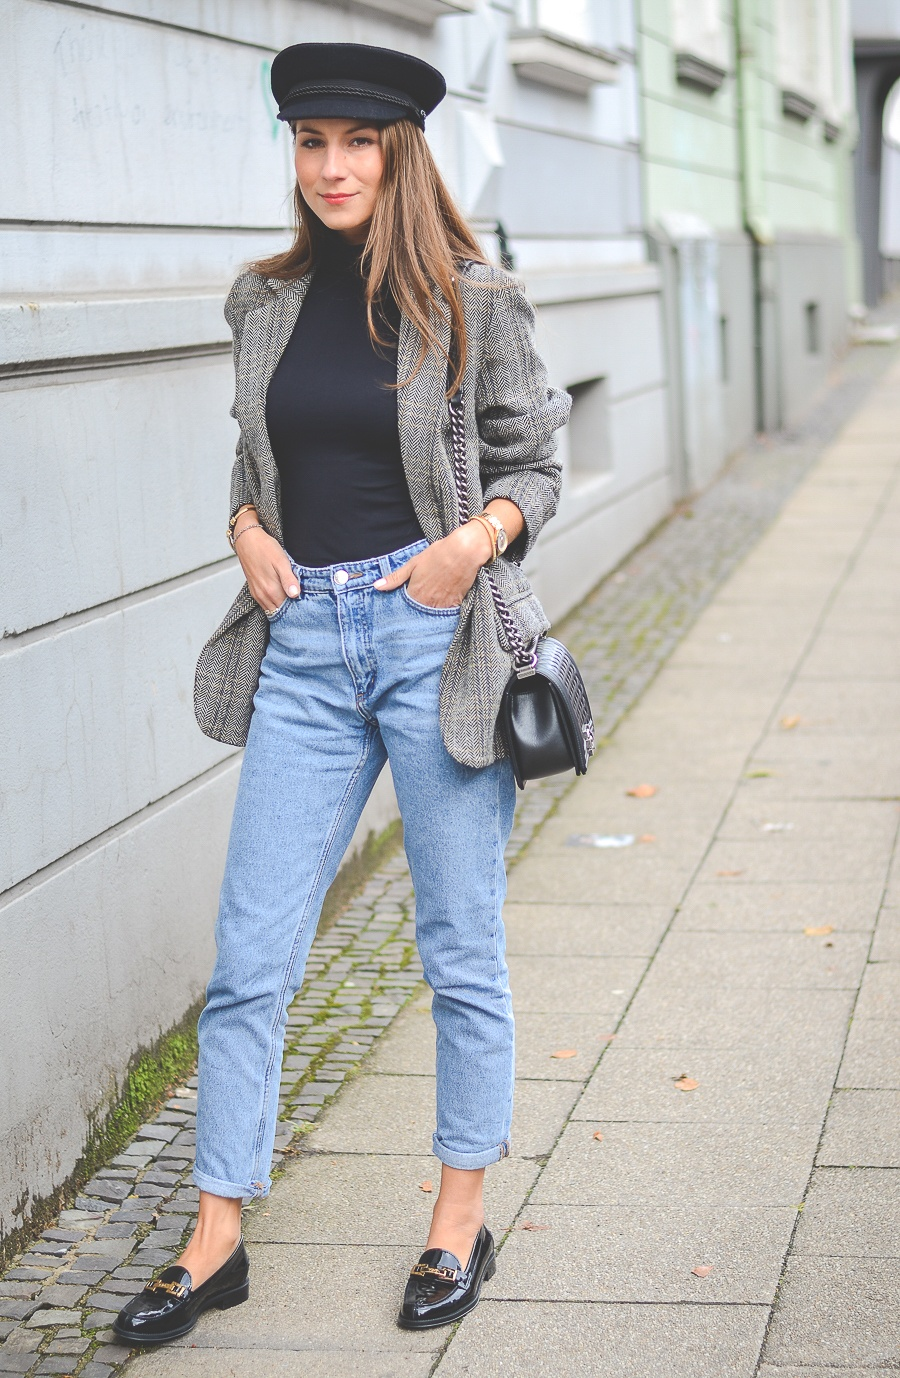 mom jeans loafers blazer outfit